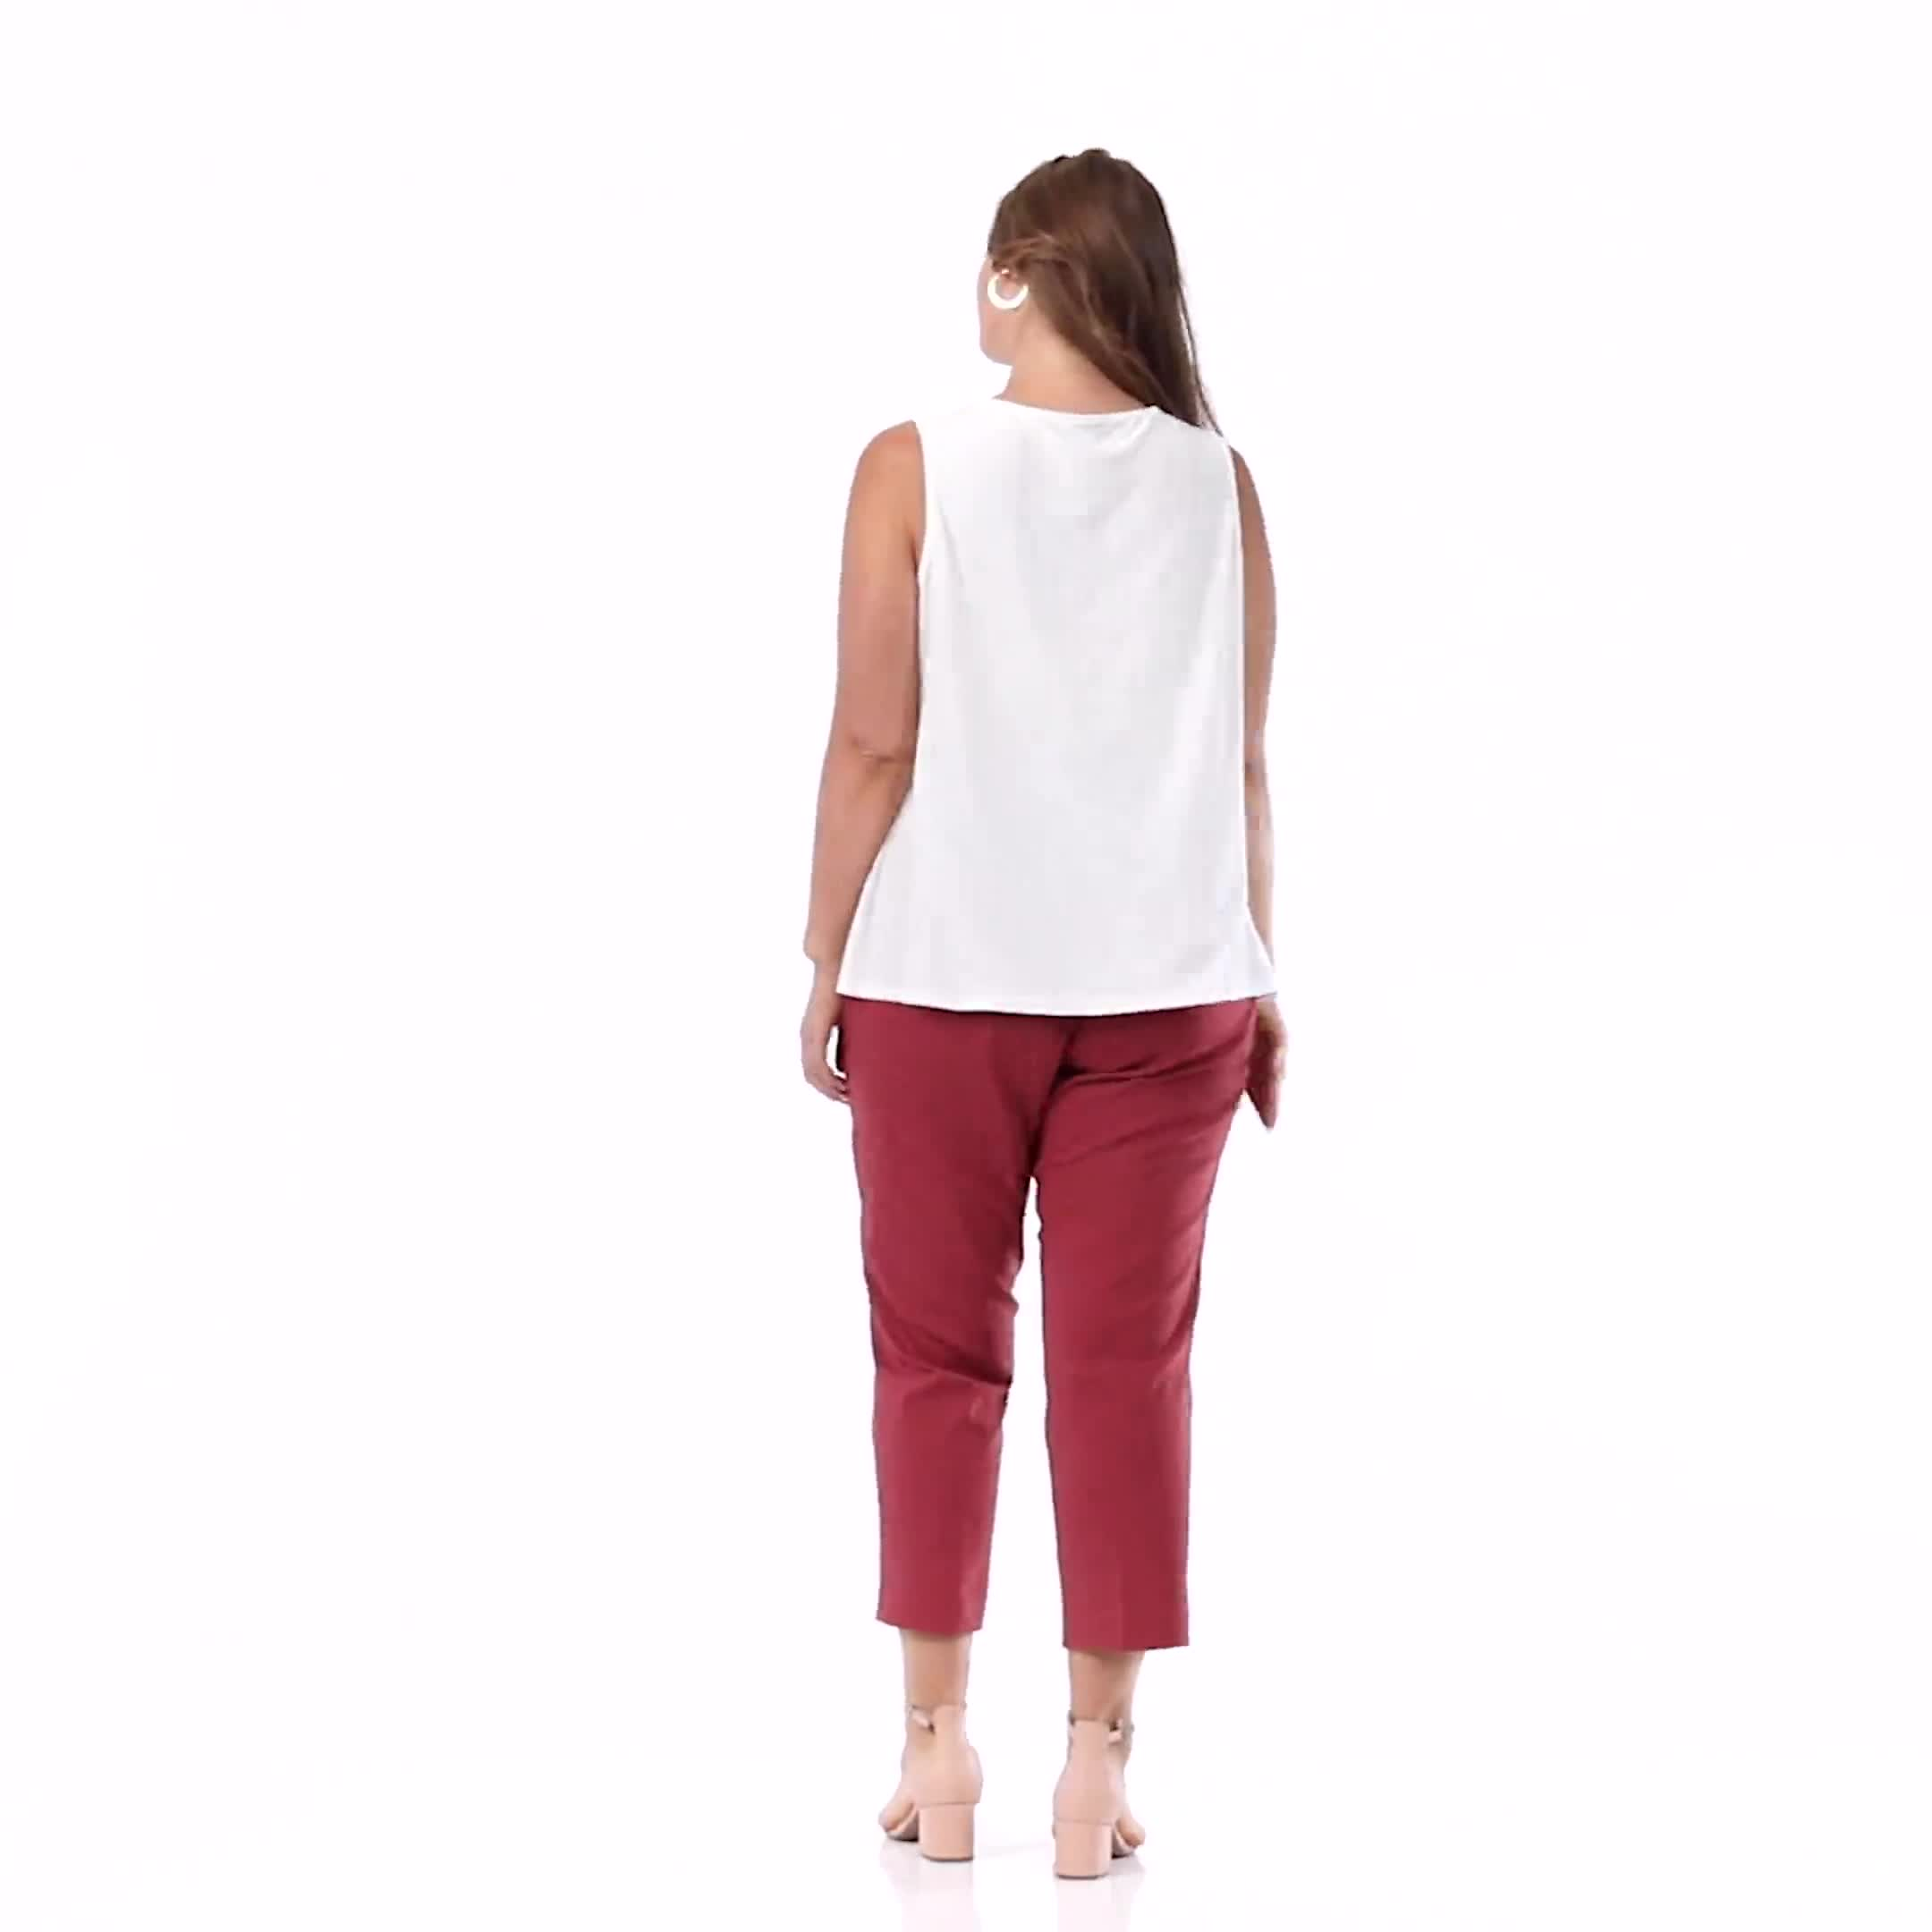 Plus- Pull On Ankle Length Pants With Zipper And Metal Tab - Video